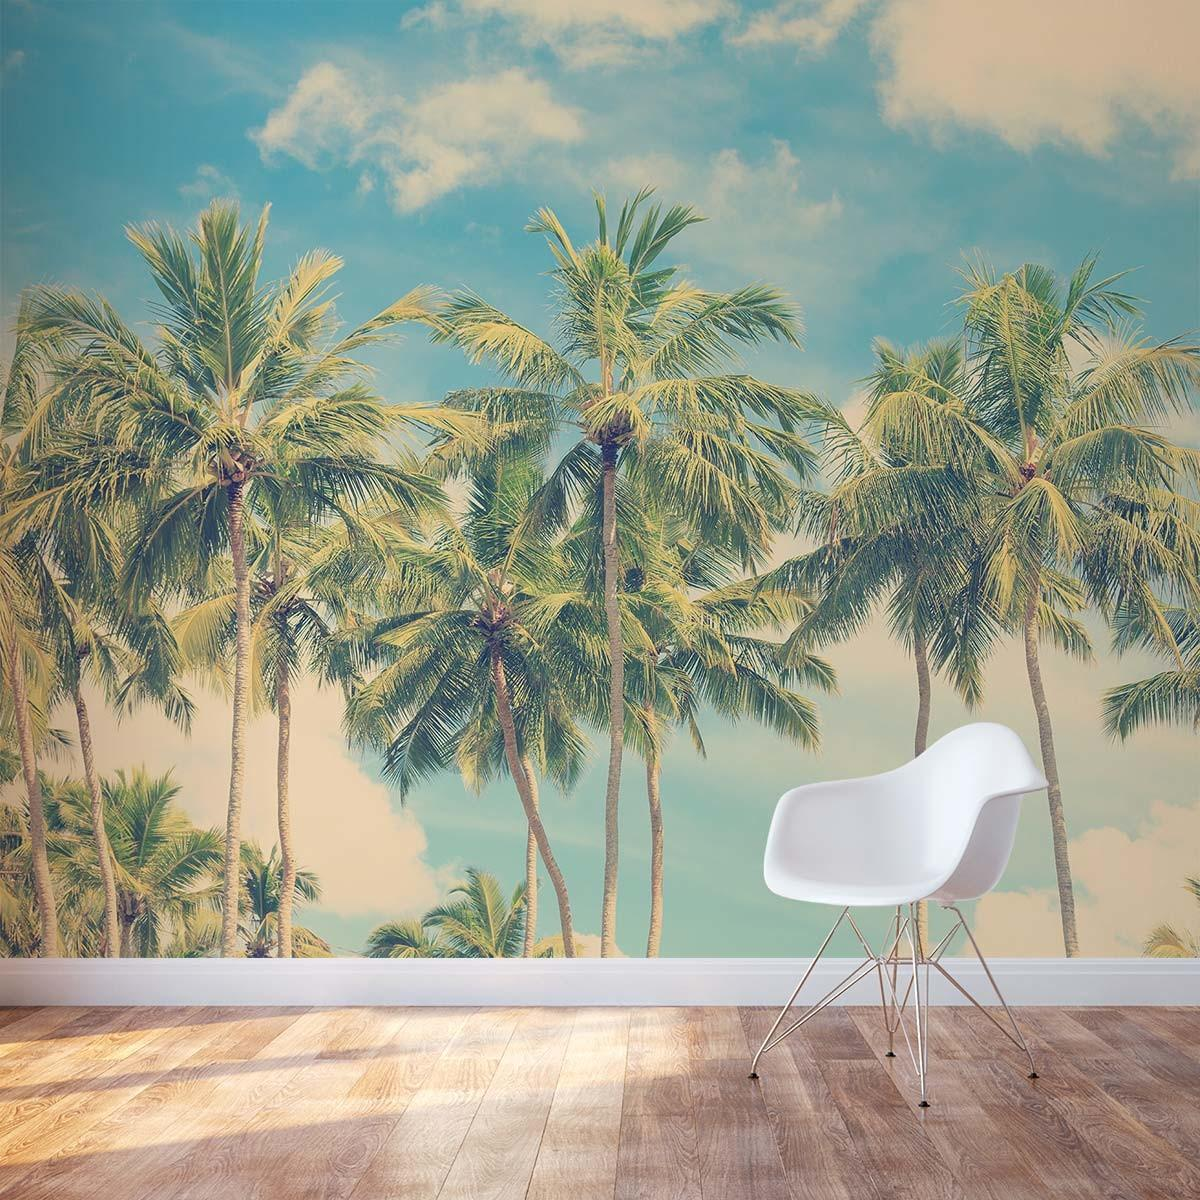 Vintage Palm Tree Wall Mural Decal